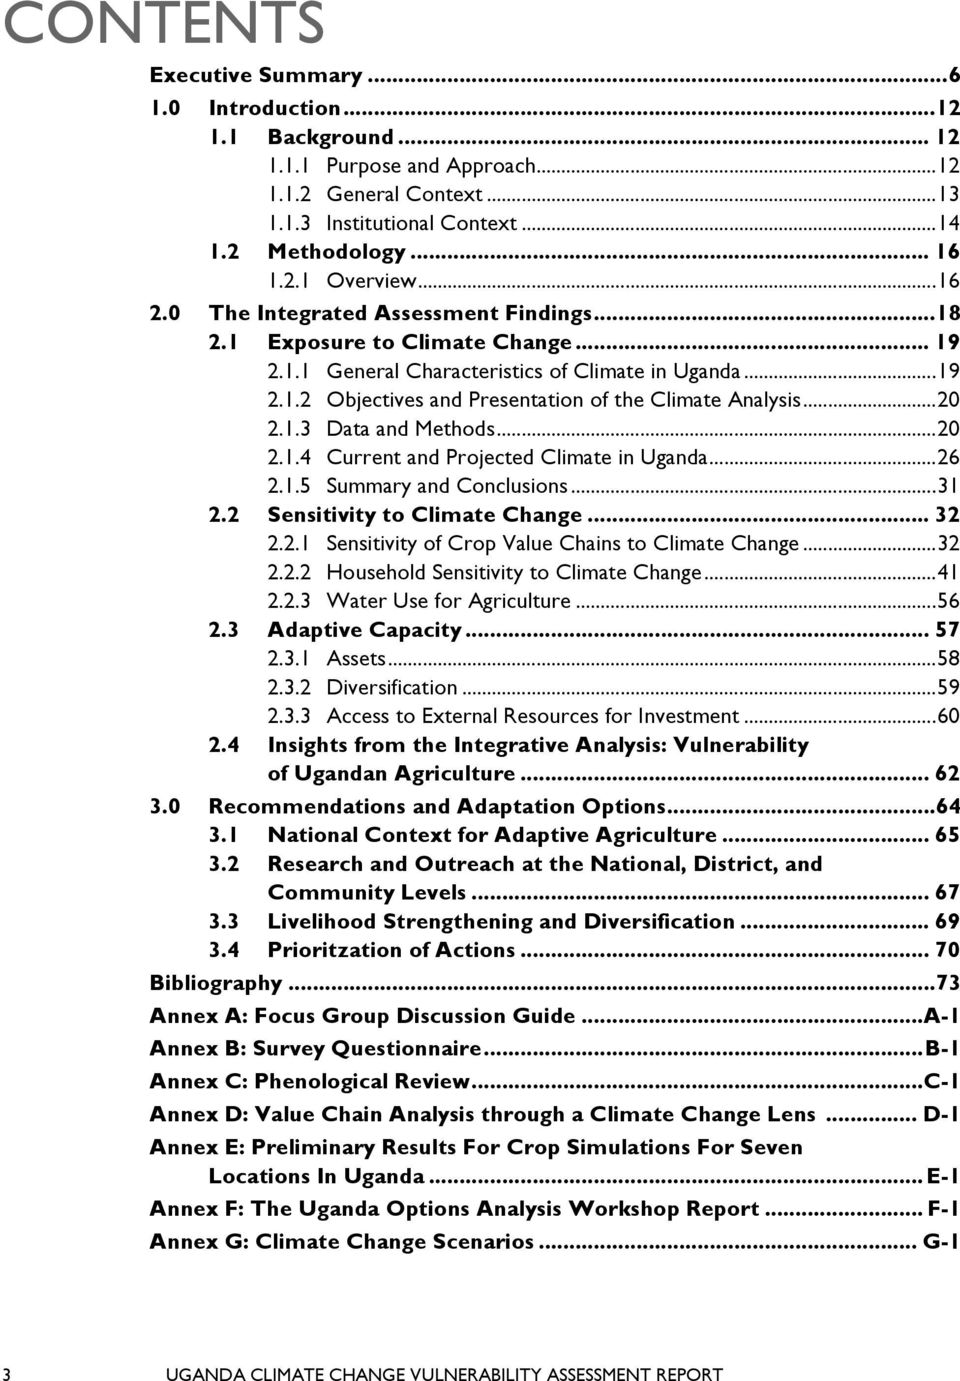 ..20 2.1.3 Data and Methods...20 2.1.4 Current and Projected Climate in Uganda...26 2.1.5 Summary and Conclusions...31 2.2 Sensitivity to Climate Change... 32 2.2.1 Sensitivity of Crop Value Chains to Climate Change.